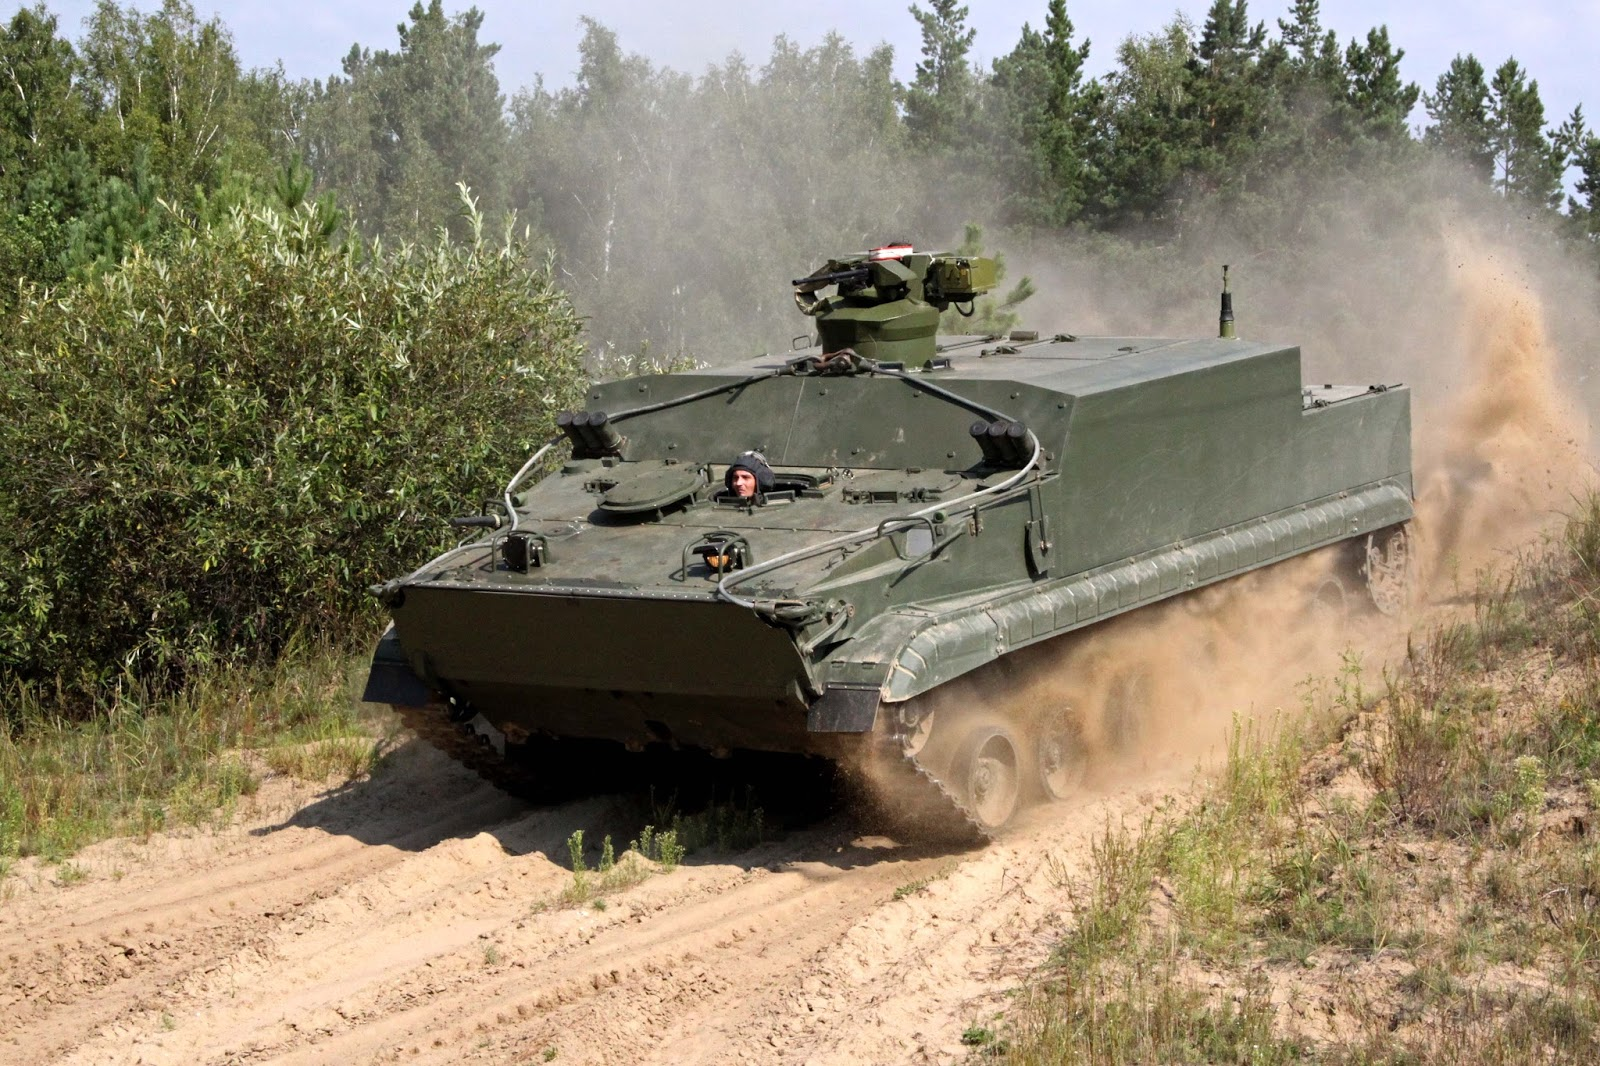 DEFENSE STUDIES: Indonesia Interest in BT-3F Amphibious Tracked APC